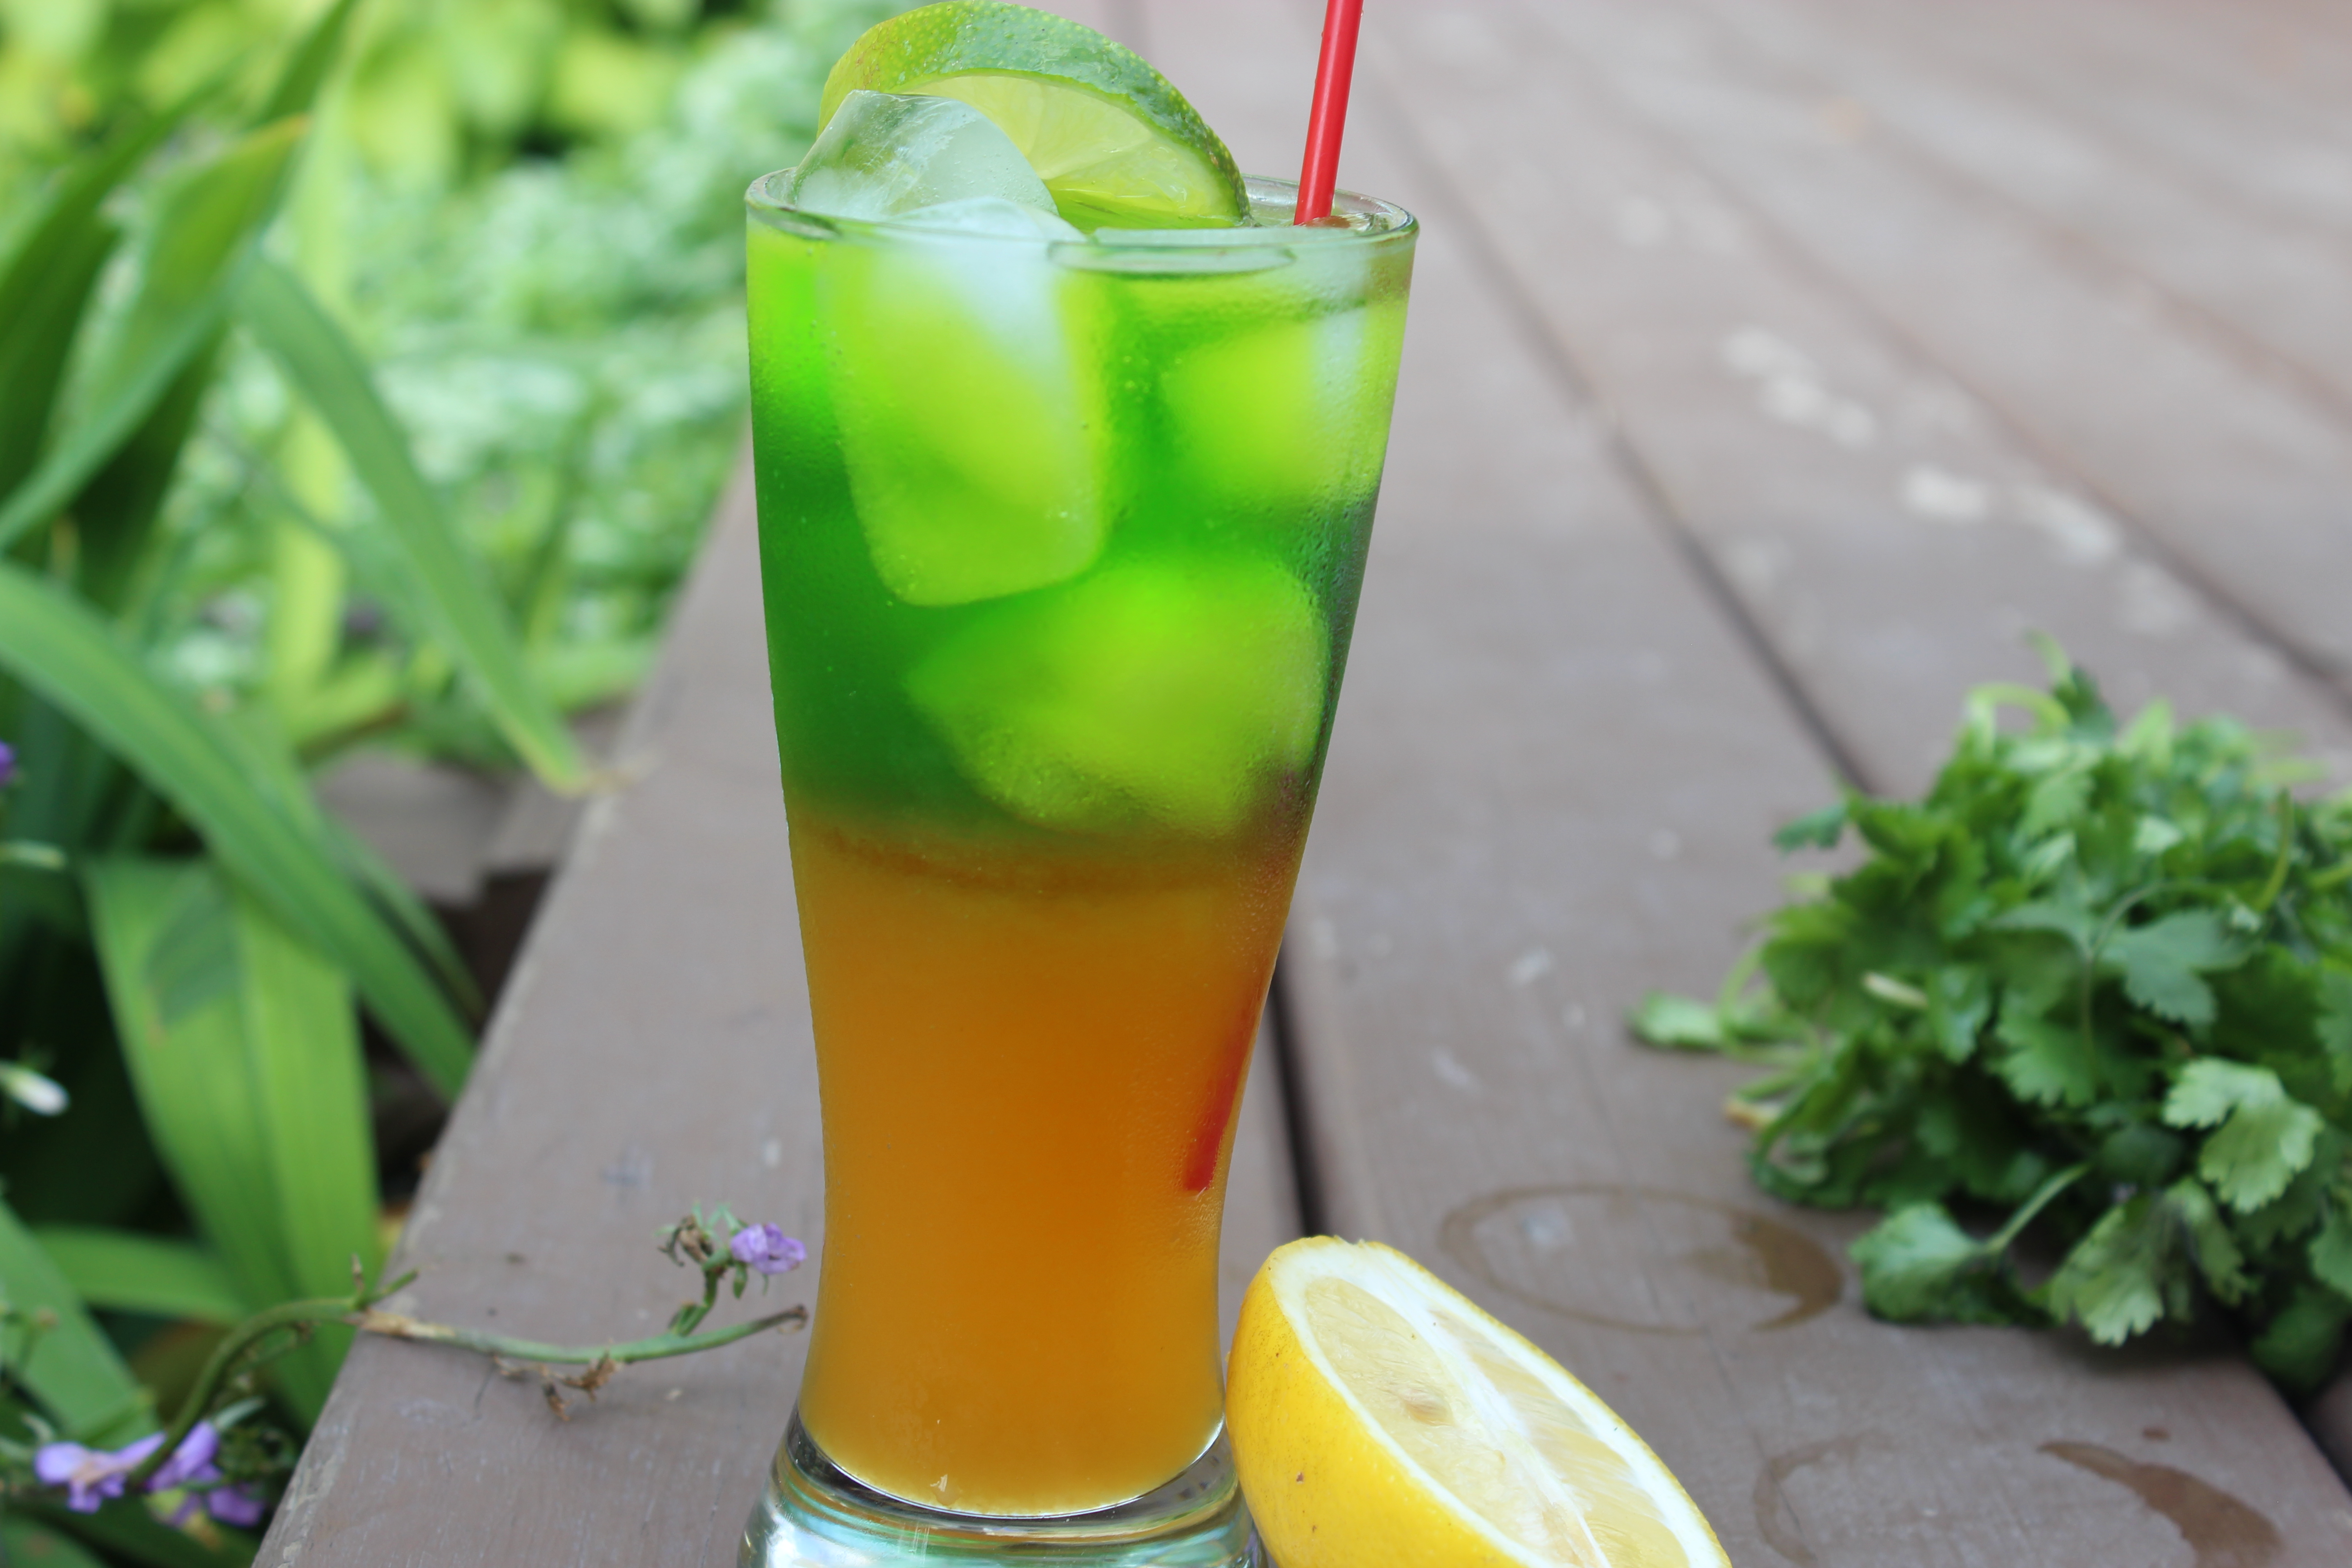 Mango-kiwi Cocktail